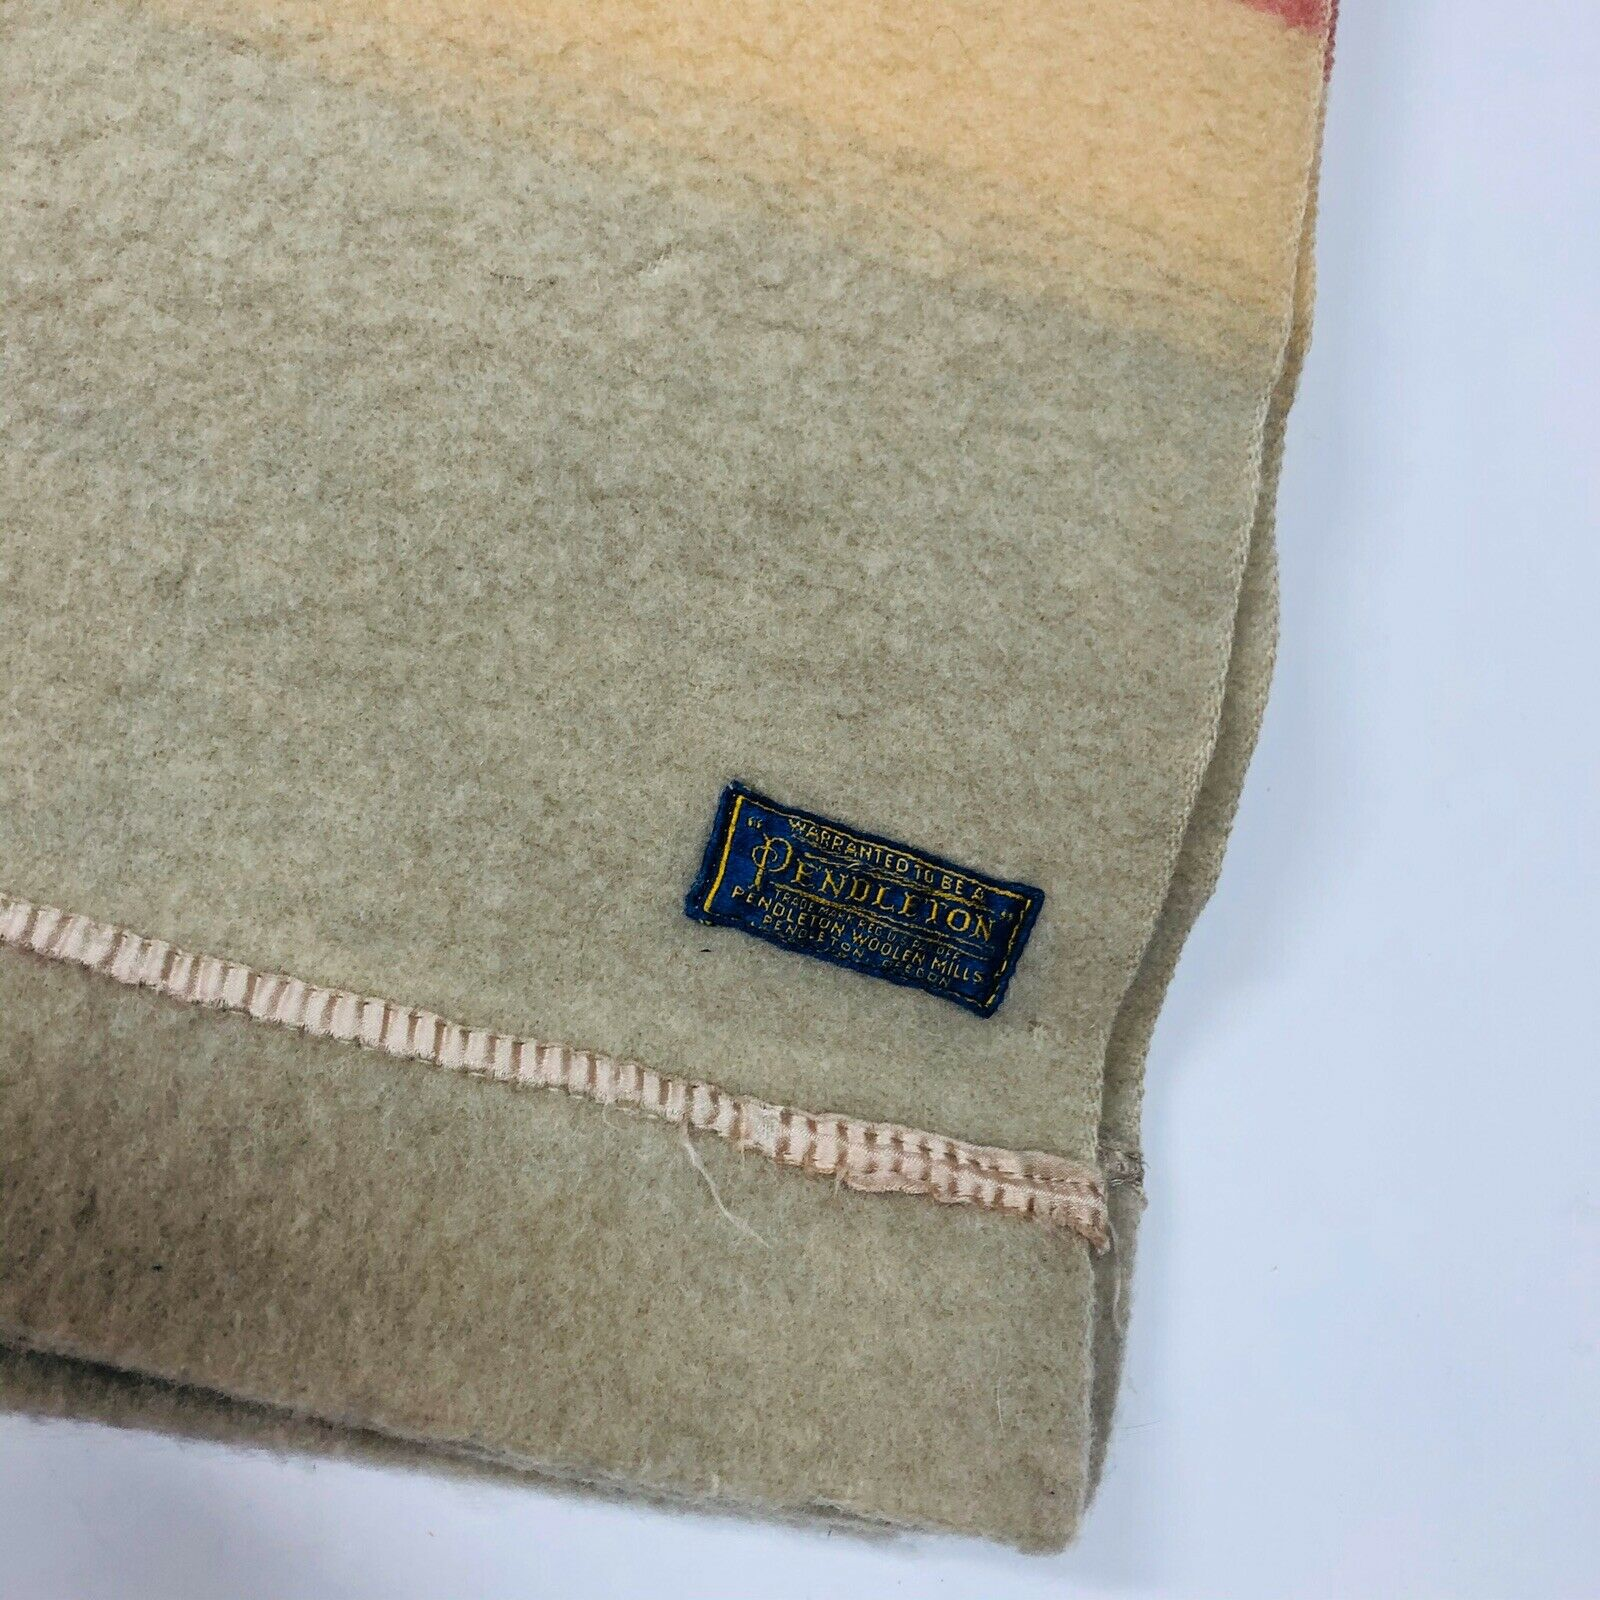 The corner of the 1940s version shows a blue and gold embroidered Pendleton label.